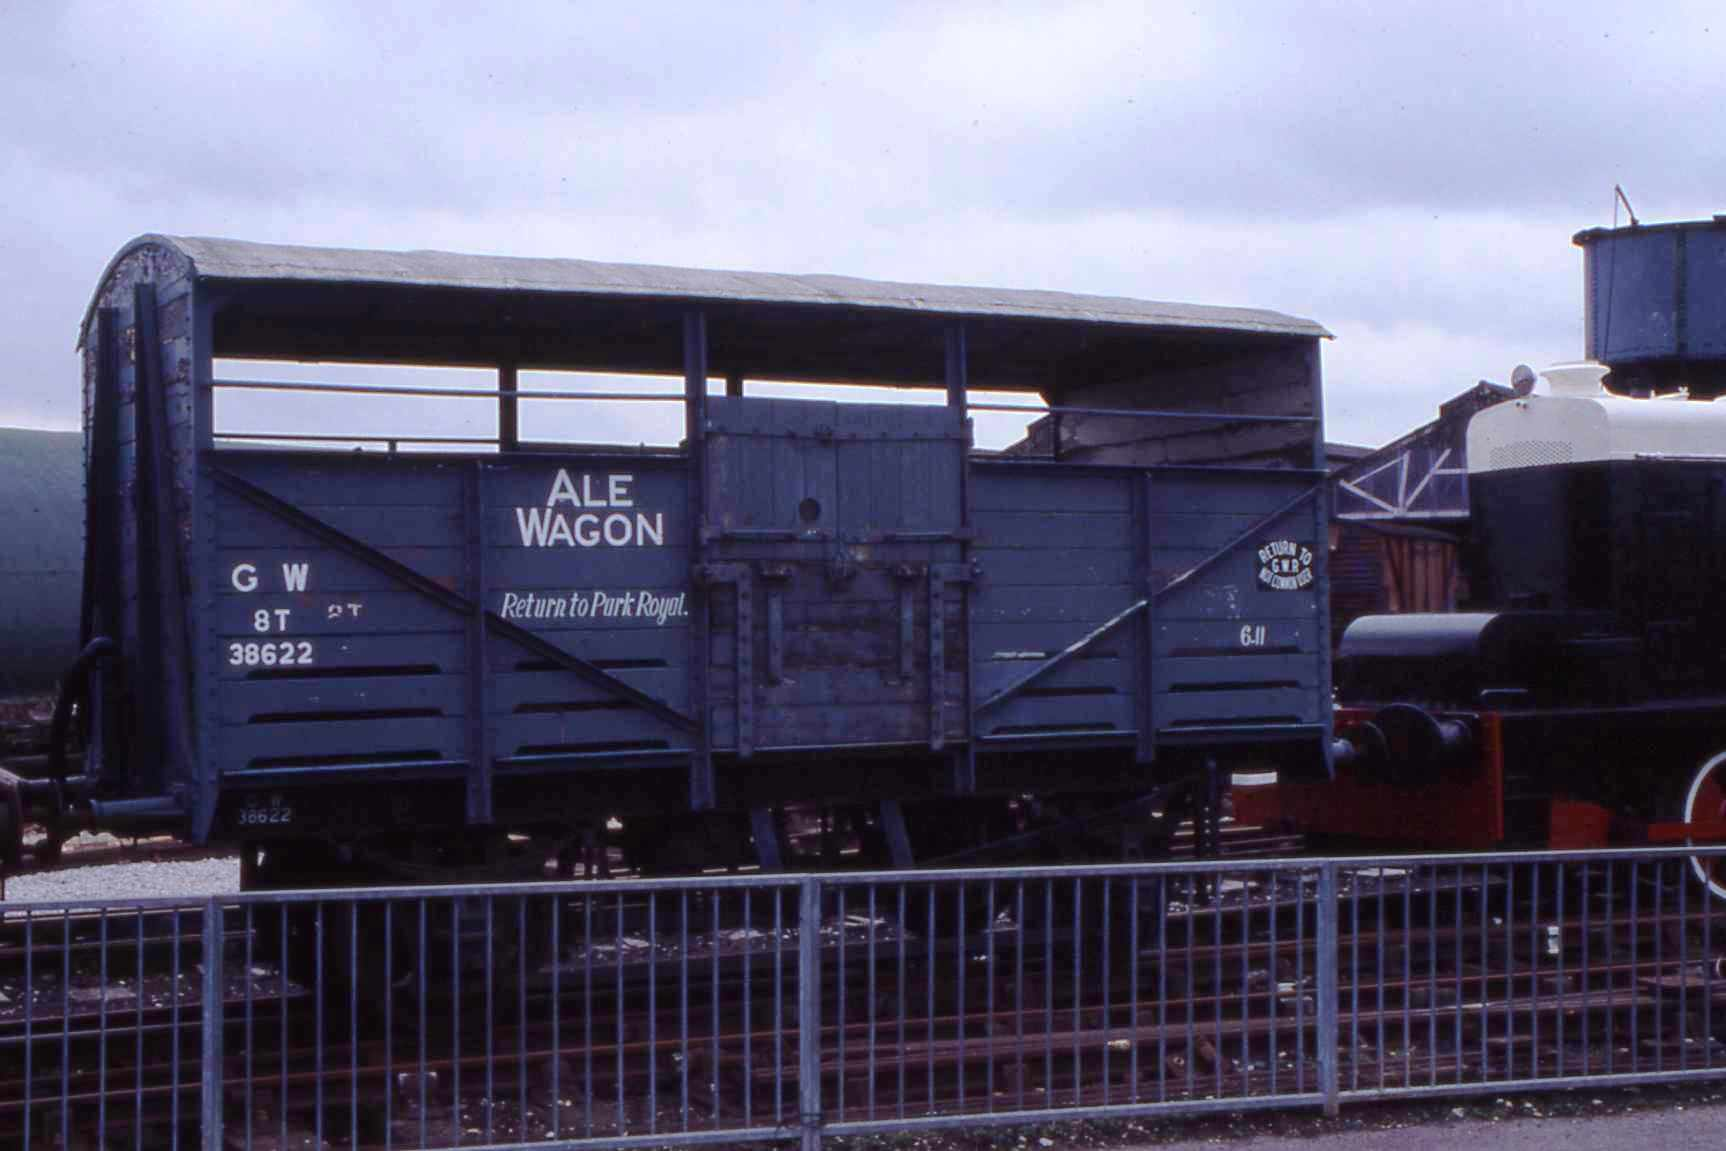 In temporary livery as an Ale Wagon